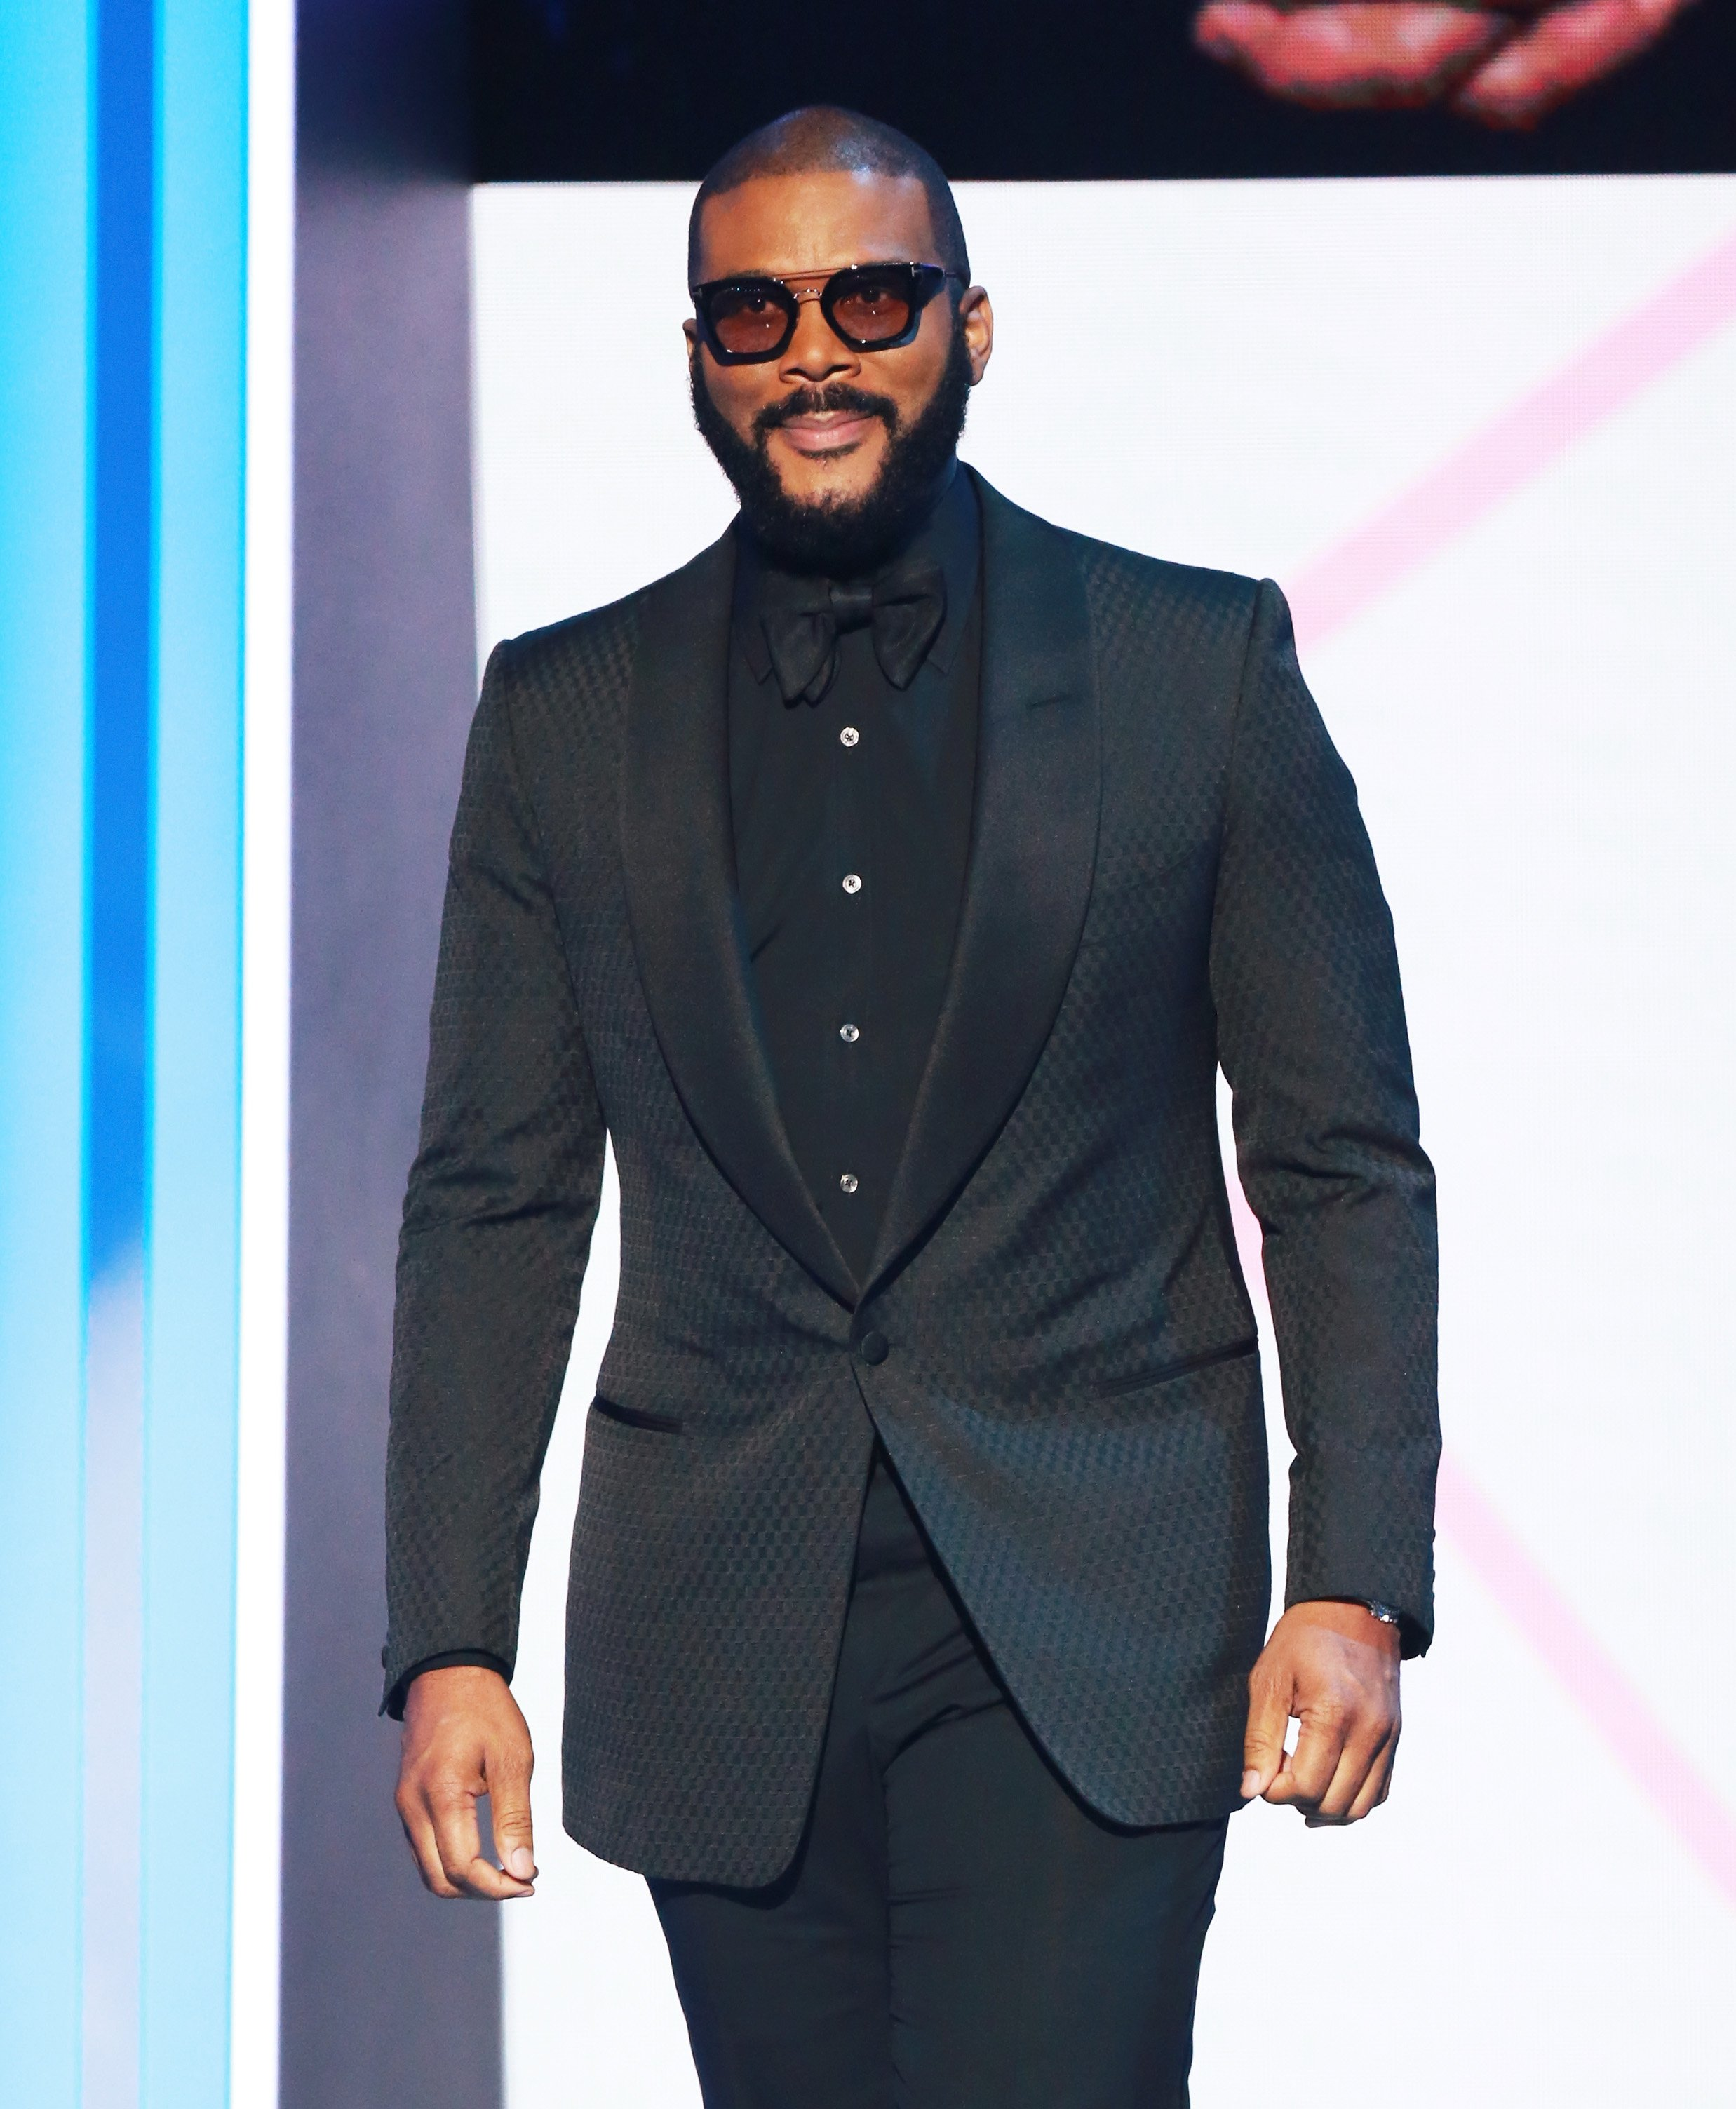 Tyler Perry speaks onstage at the 2018 BET Awards on June 24, 2018 in Los Angeles, California | Photo: Getty Images